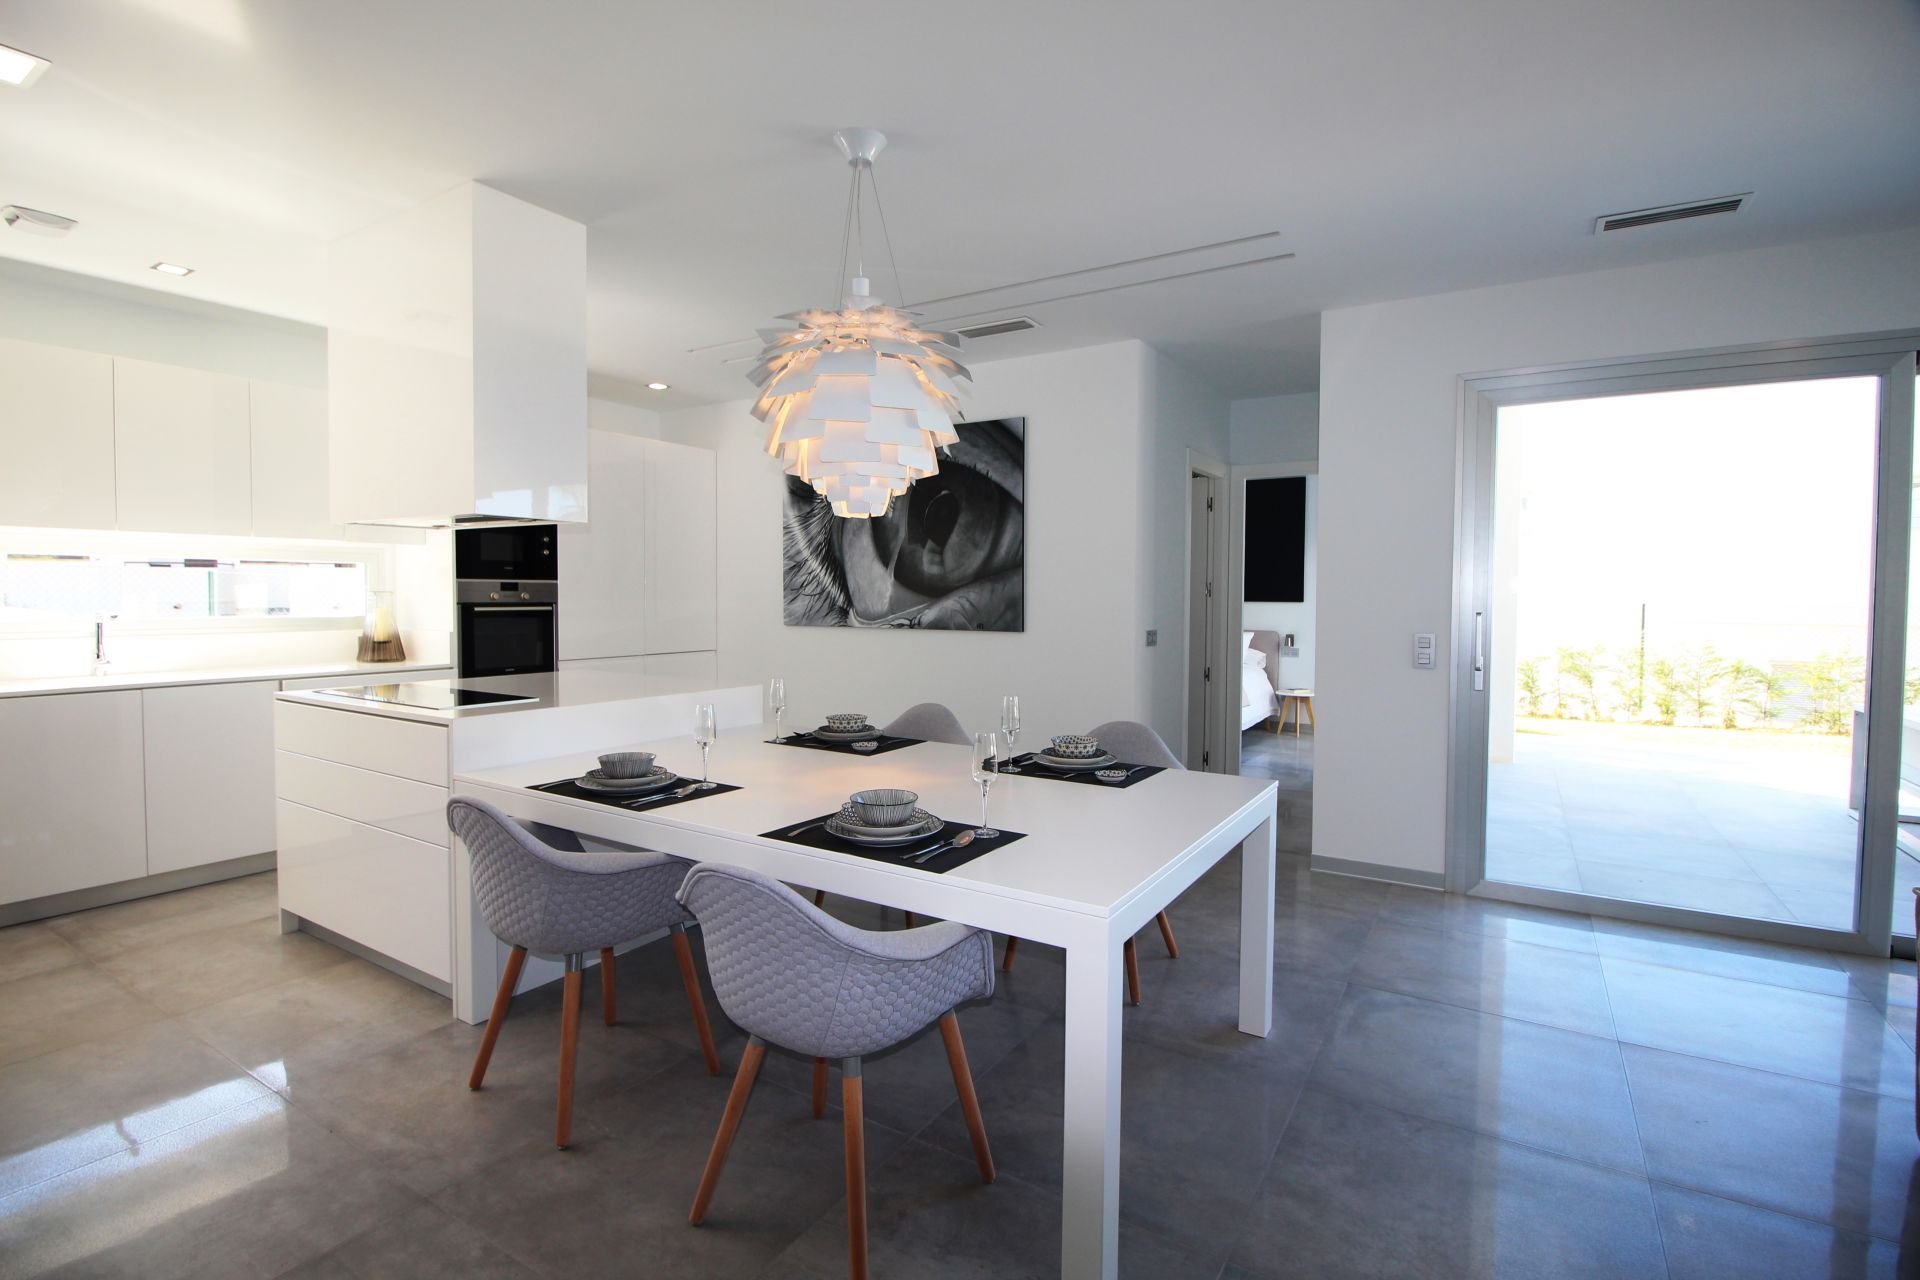 Exclusive villas with 3 bedrooms in Finestrat 7